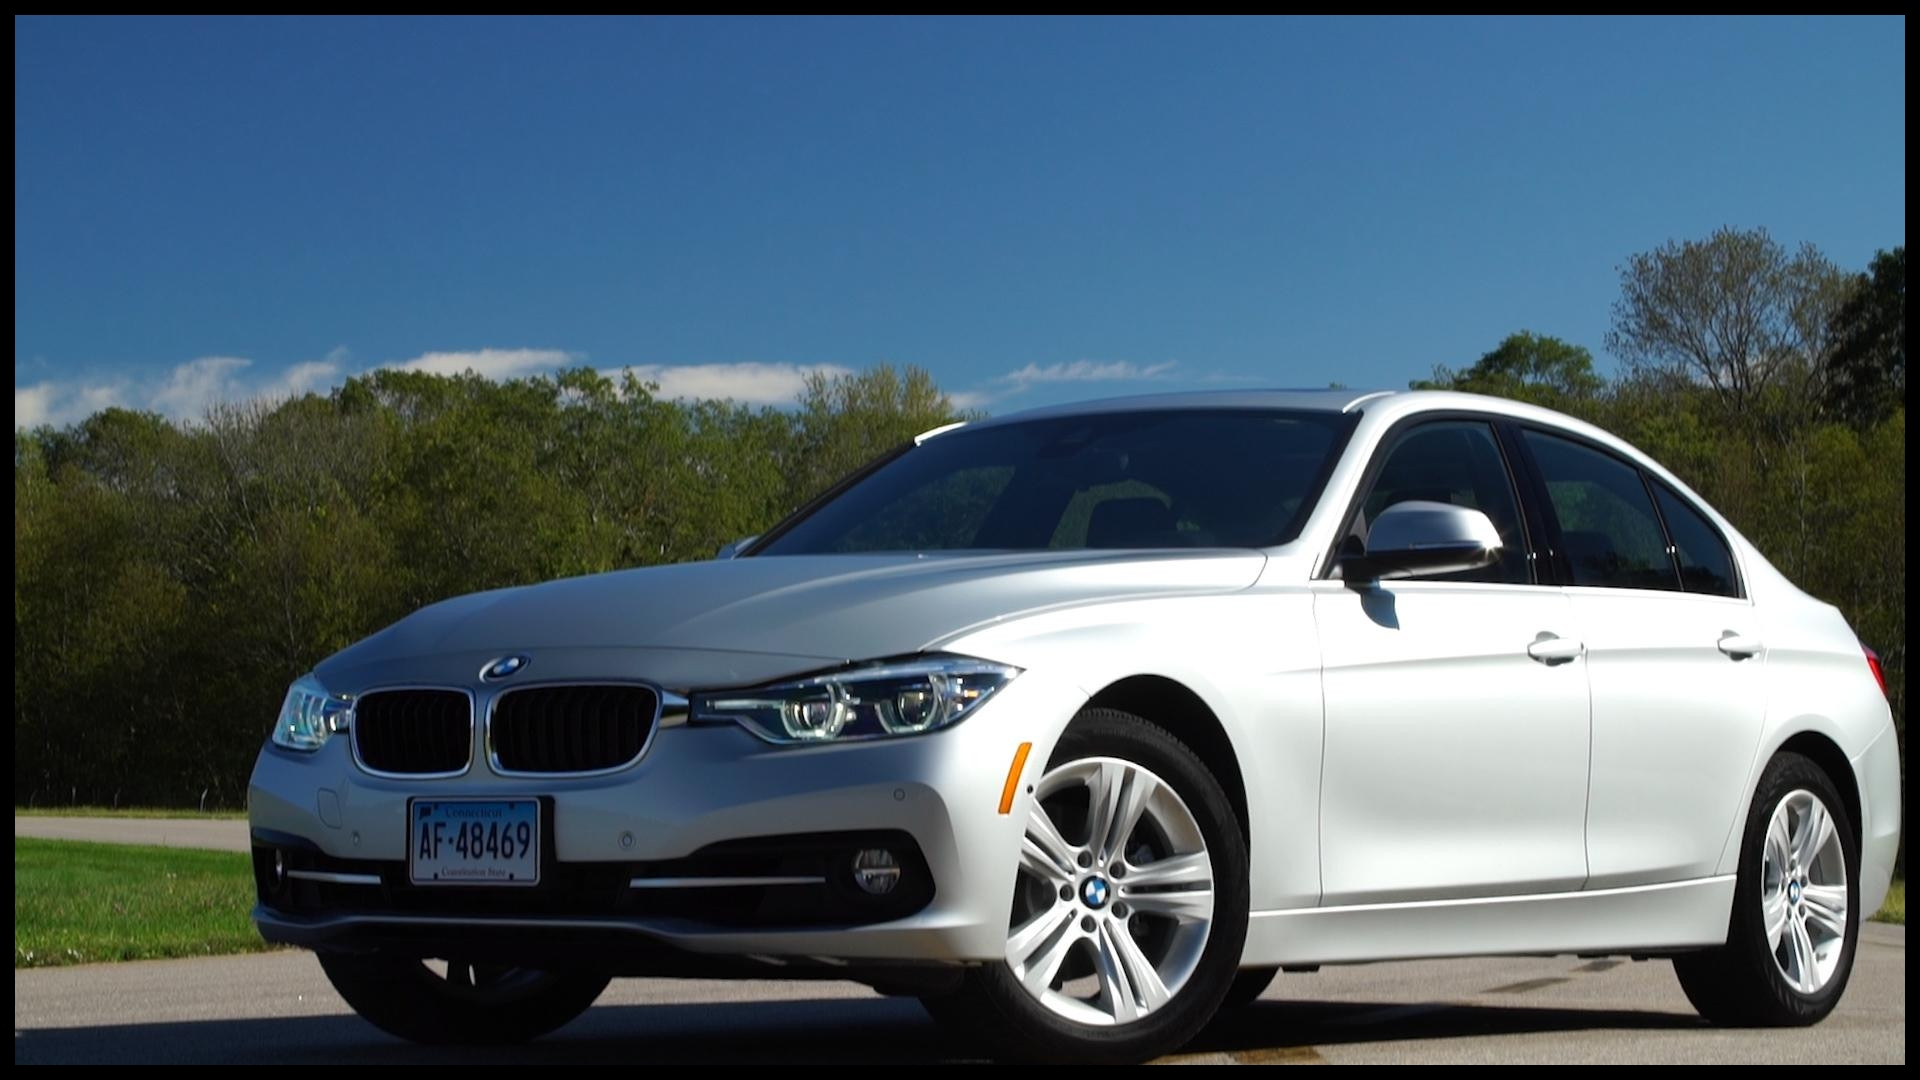 2006 Bmw 330xi Reliability Unique 2017 Bmw 3 Series Reviews Ratings Prices Consumer Reports